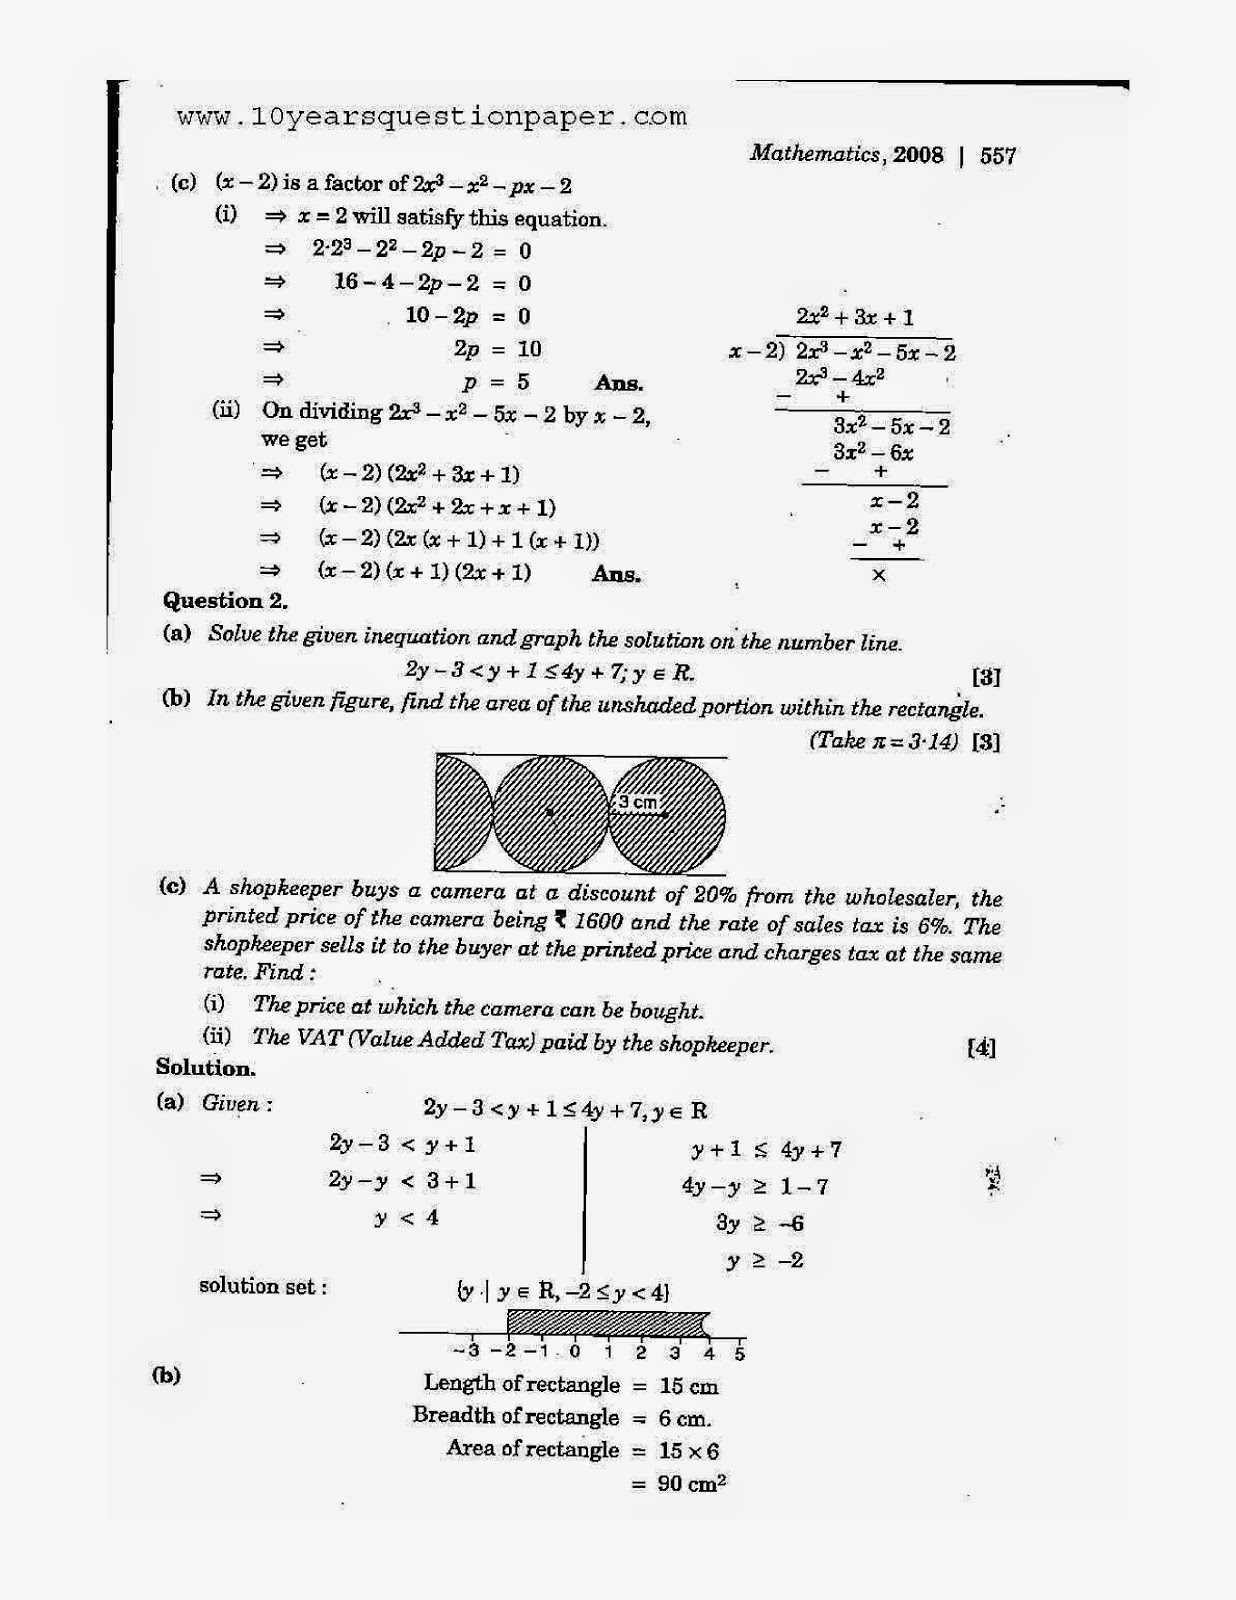 Previous 3 years question papers of international mathematics olympiad level 2?